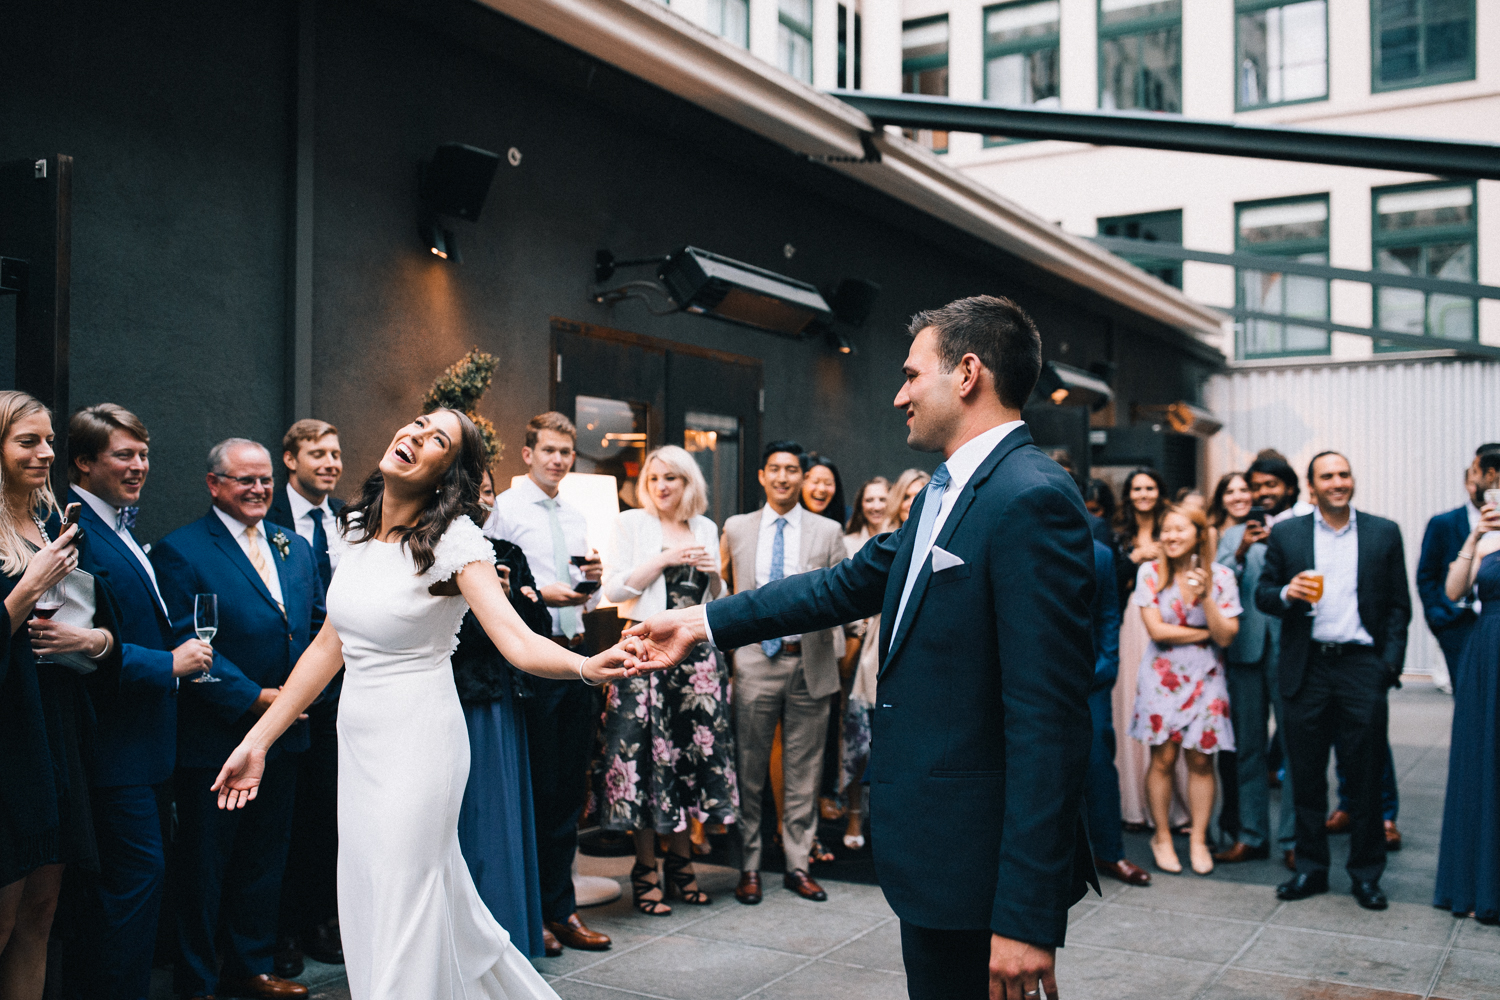 2019.06.01 Ana + Richard SF Wedding Blog Photos -1133.jpg